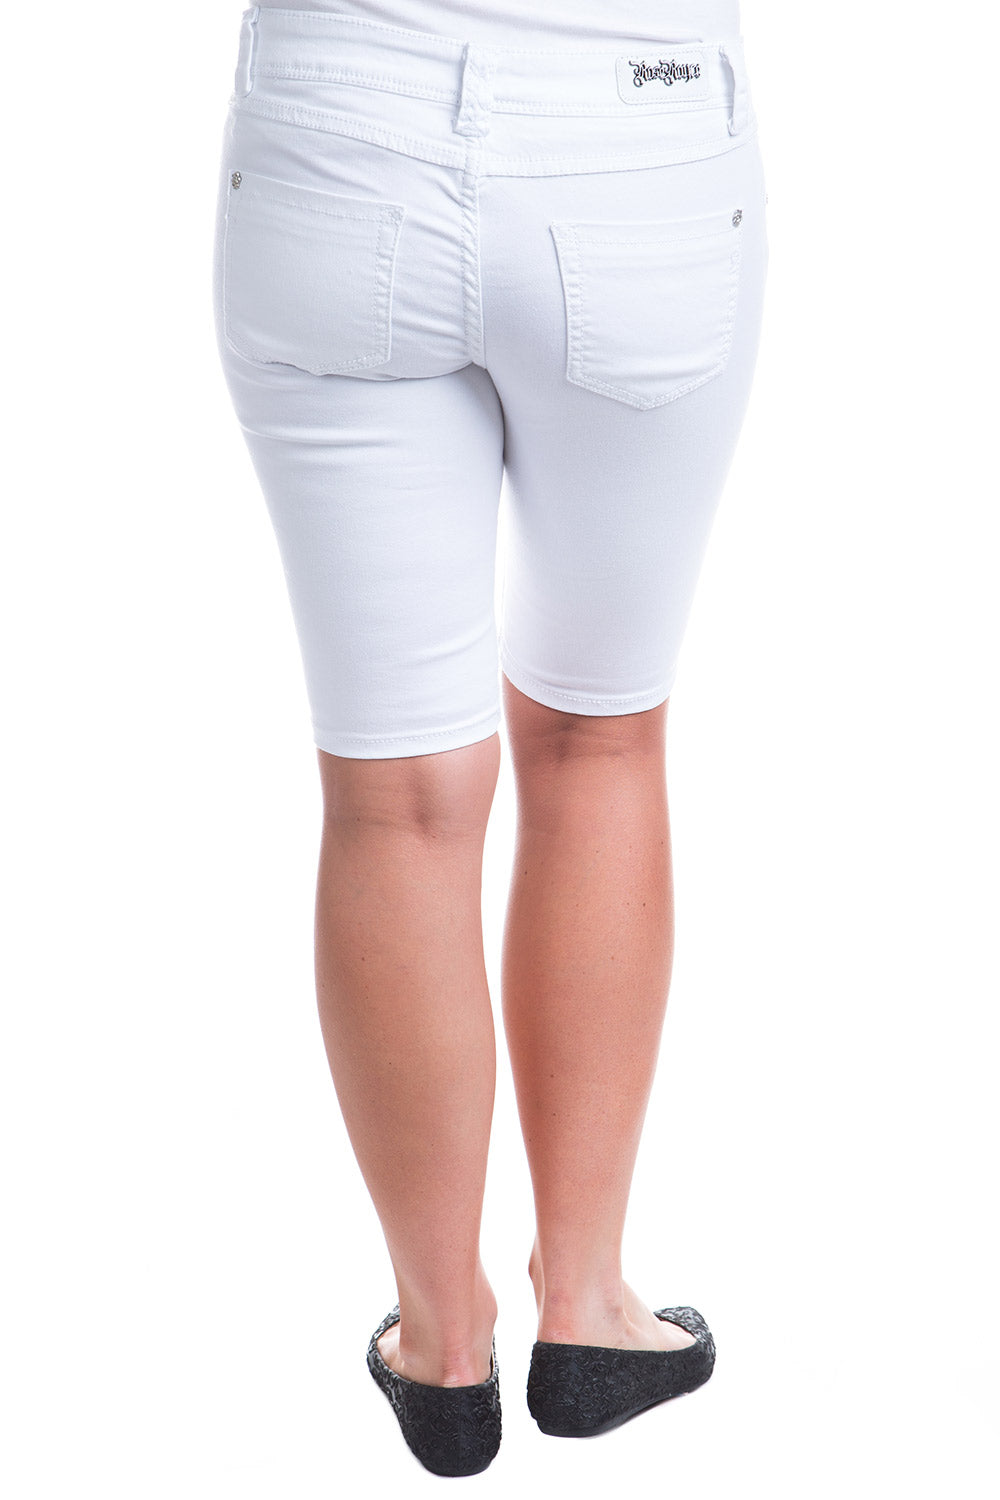 Type 1 Pearl White Shorts